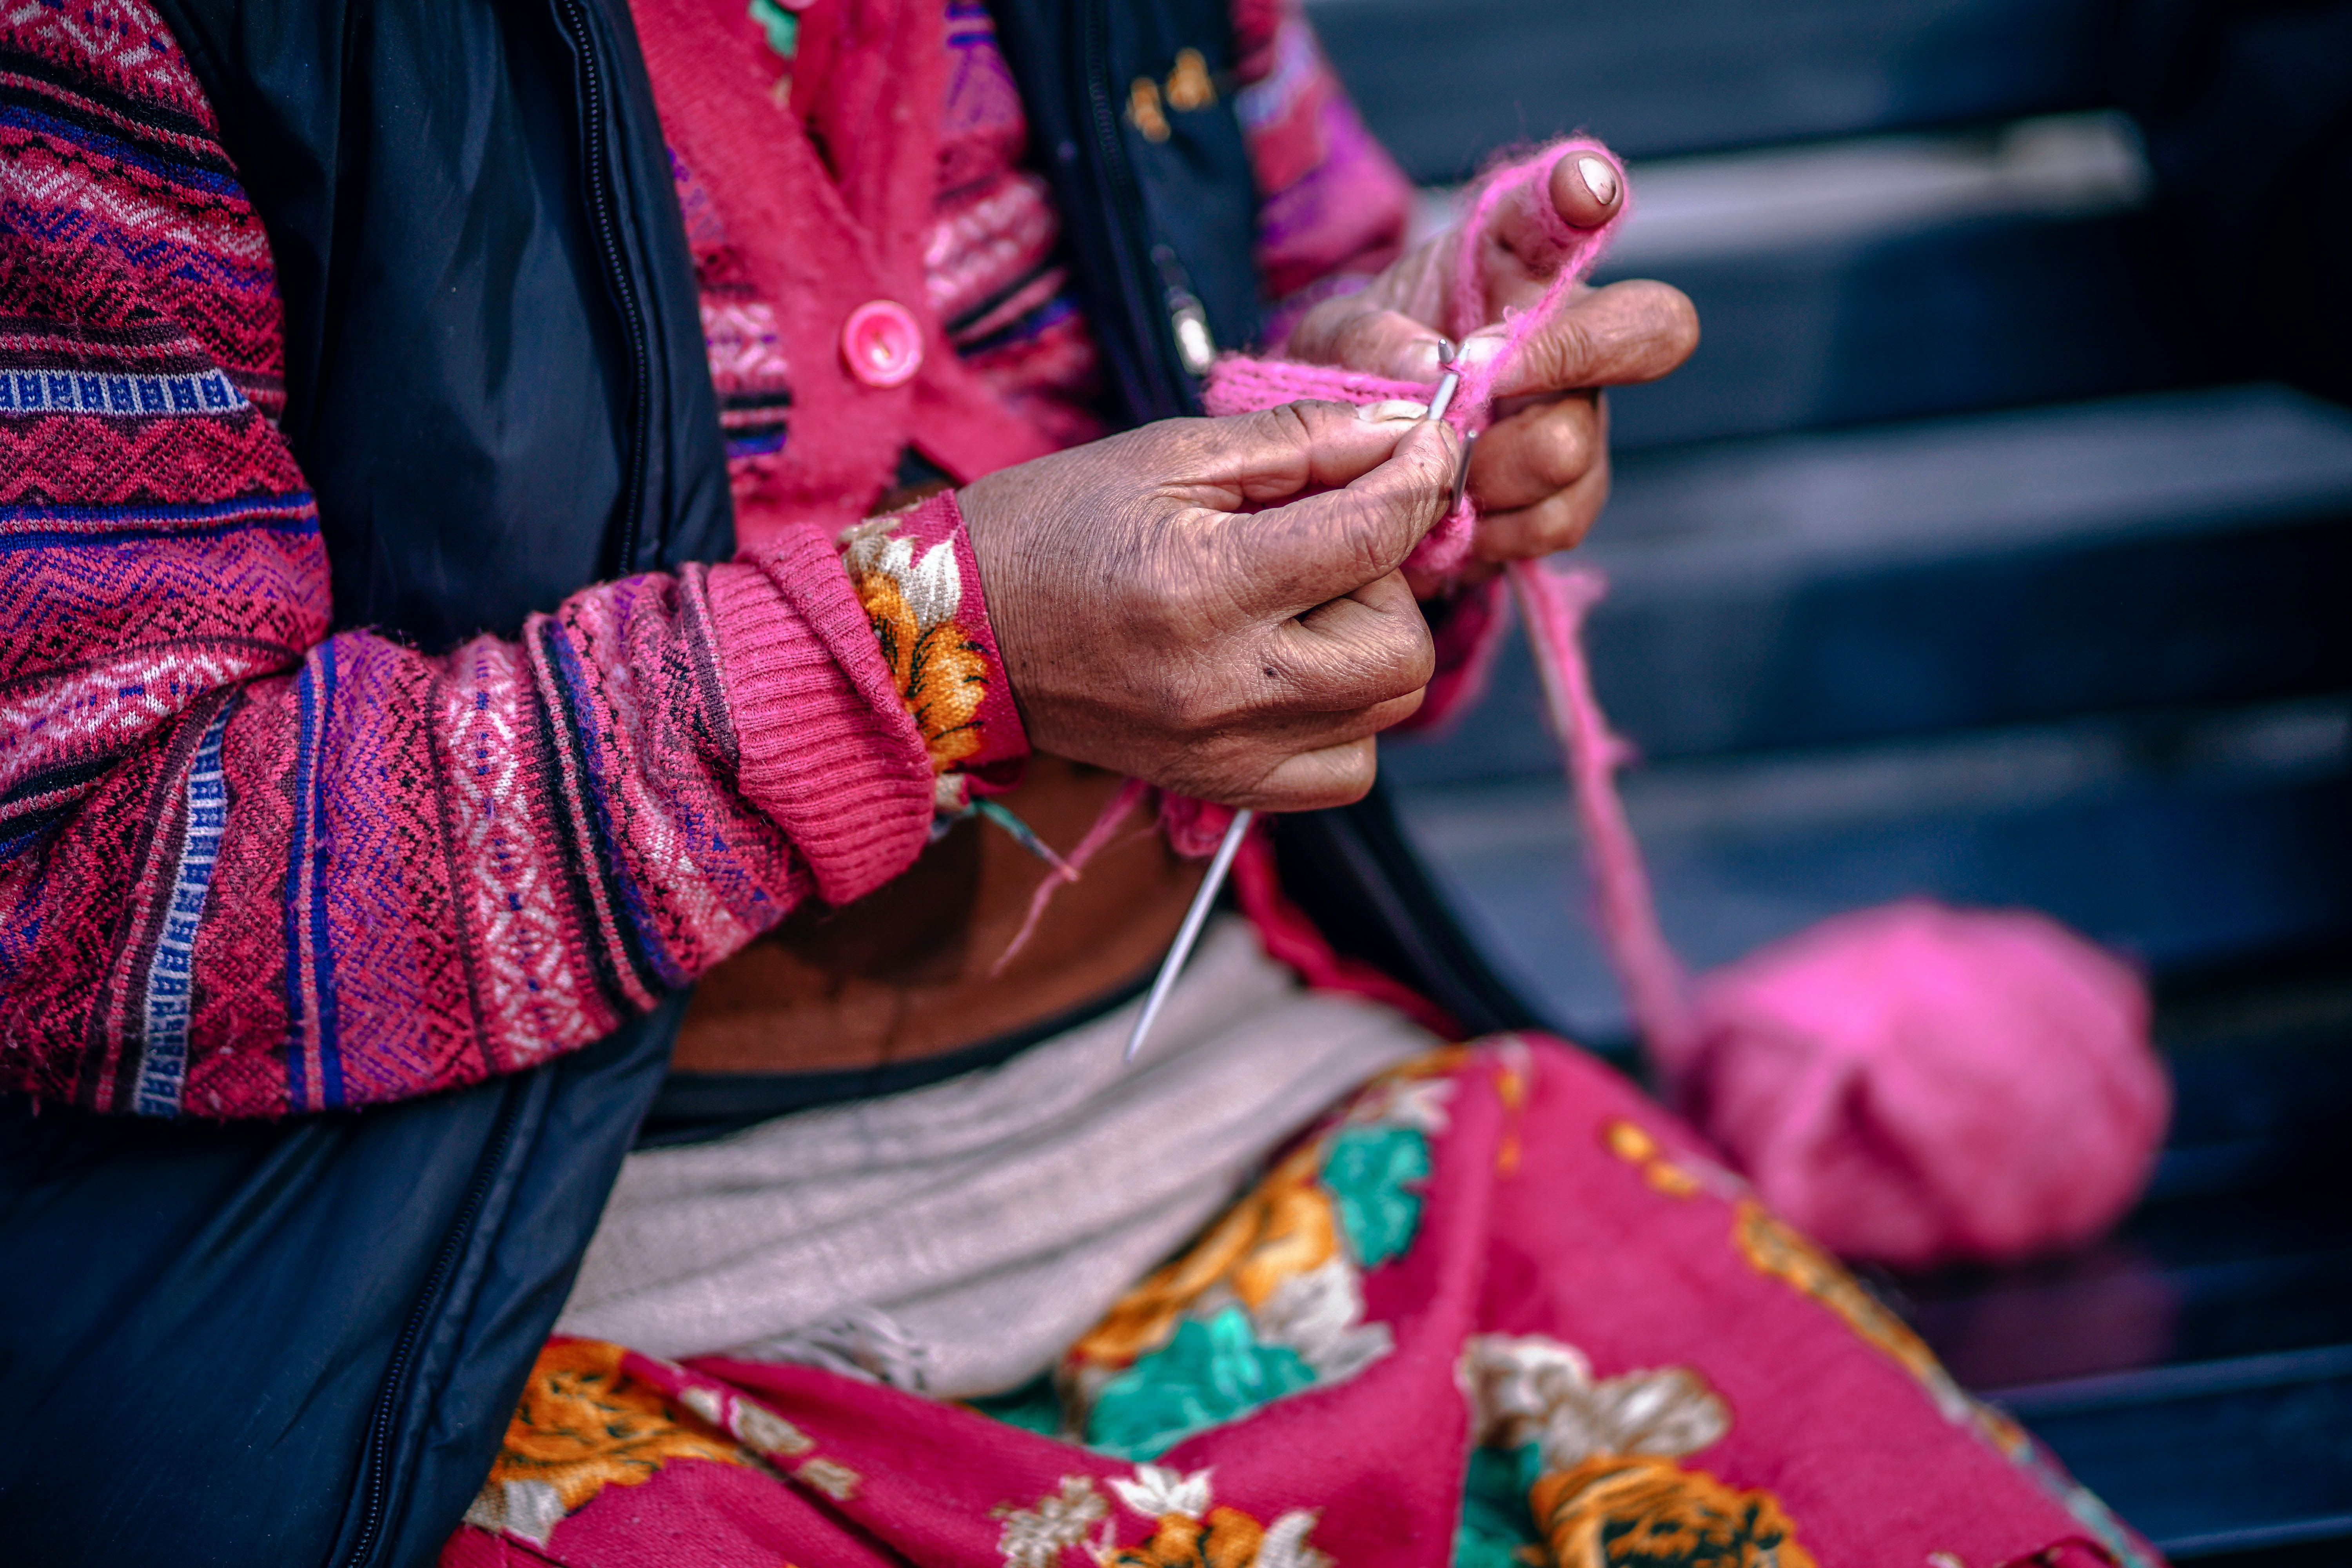 selective focus photography of woman knitting pink yarn